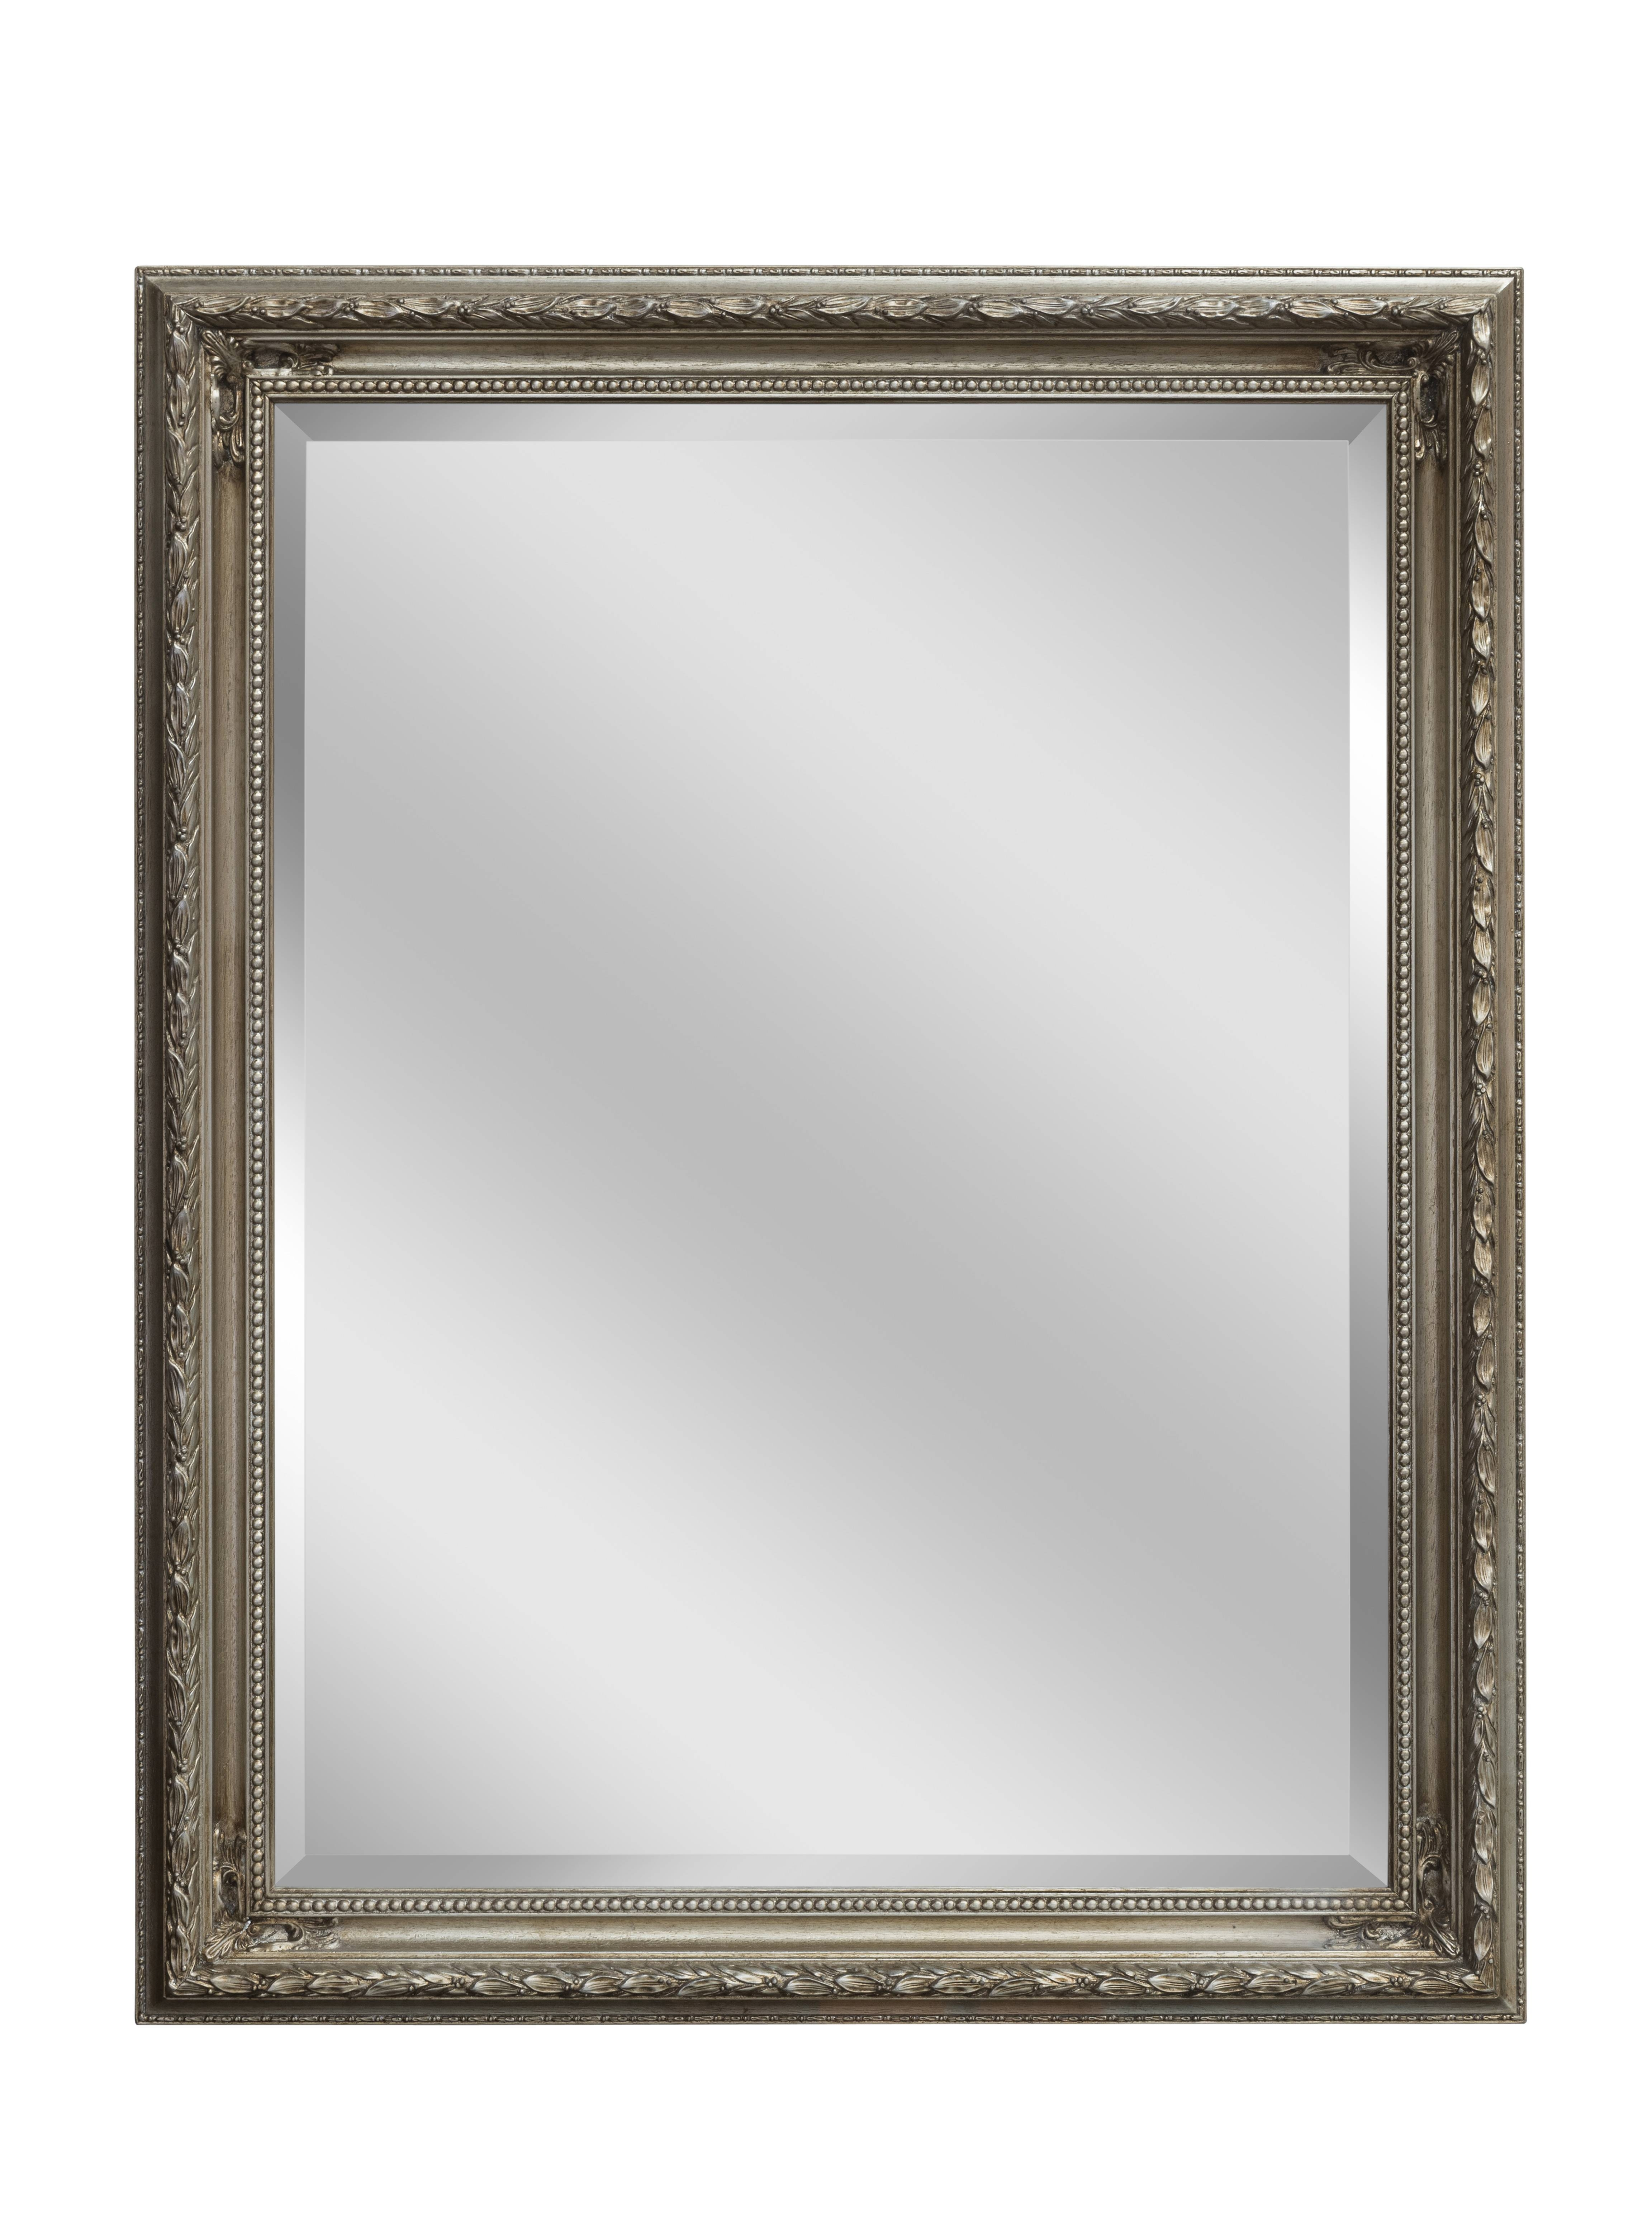 Silver Baroque Mirror | Large Mirrors For Sale – Panfili Mirrors With Regard To Silver Baroque Mirrors (View 14 of 15)